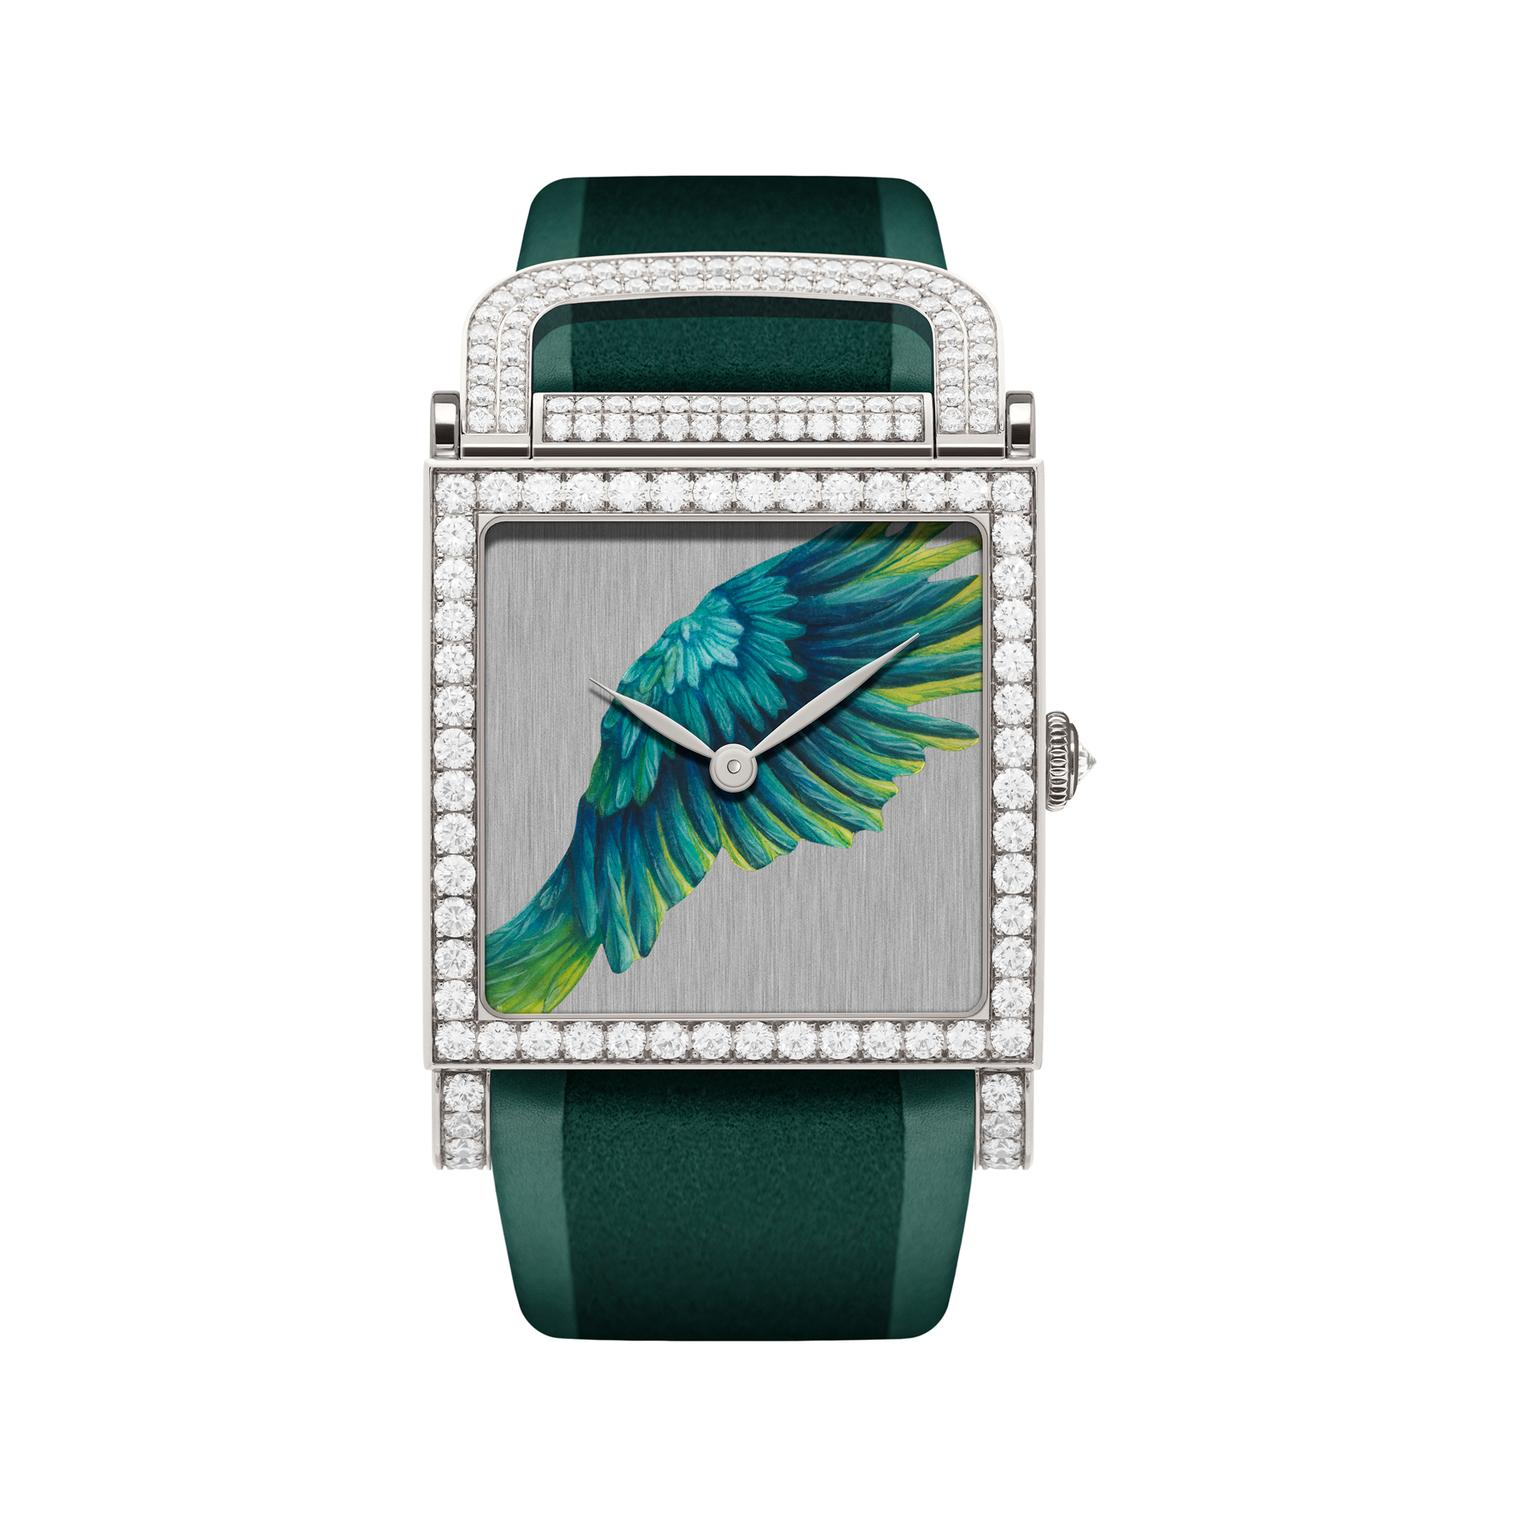 DeLaneau Dôme Parrot Wing watch